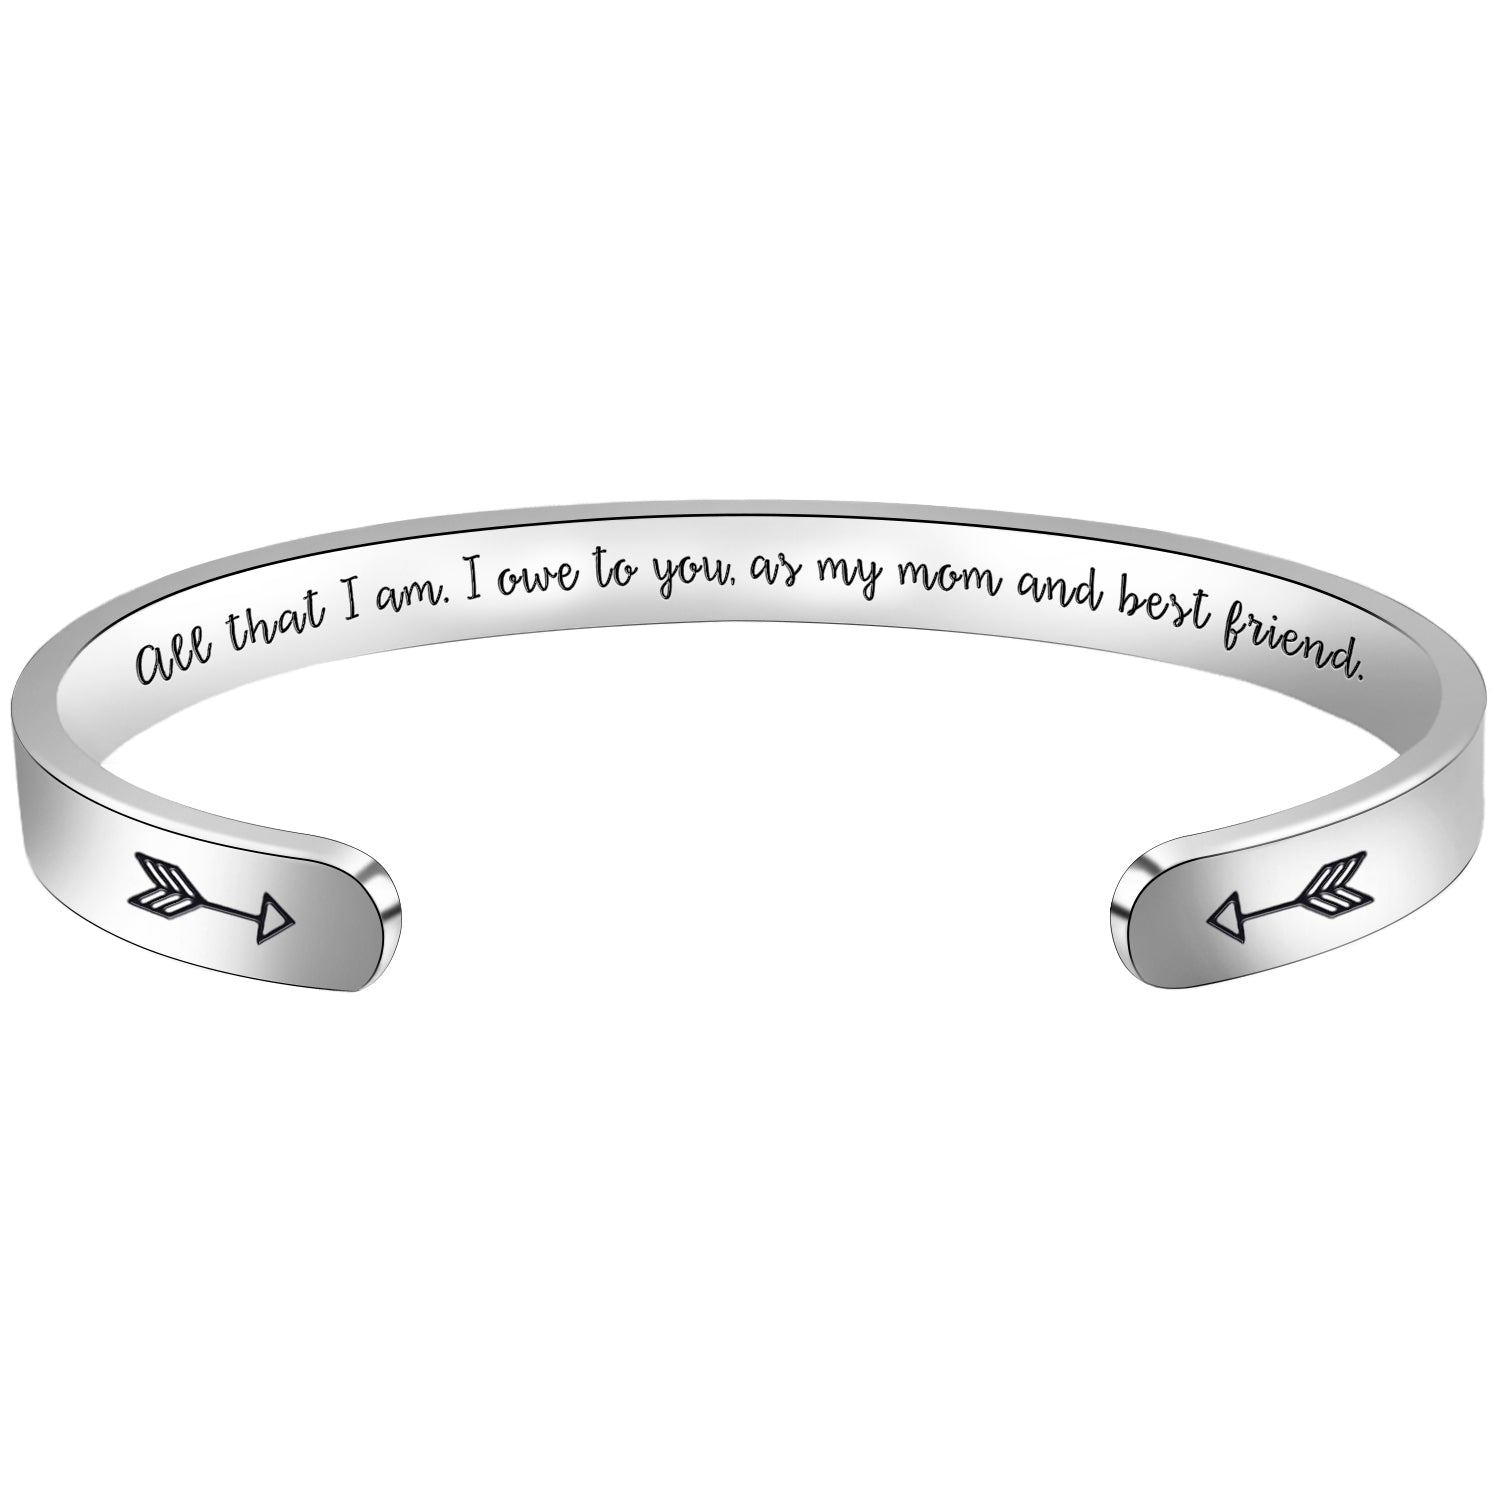 Friendship bracelet - All that I am. I owe to you,as my mom and best friend-Cuff Bracelets-Btysun